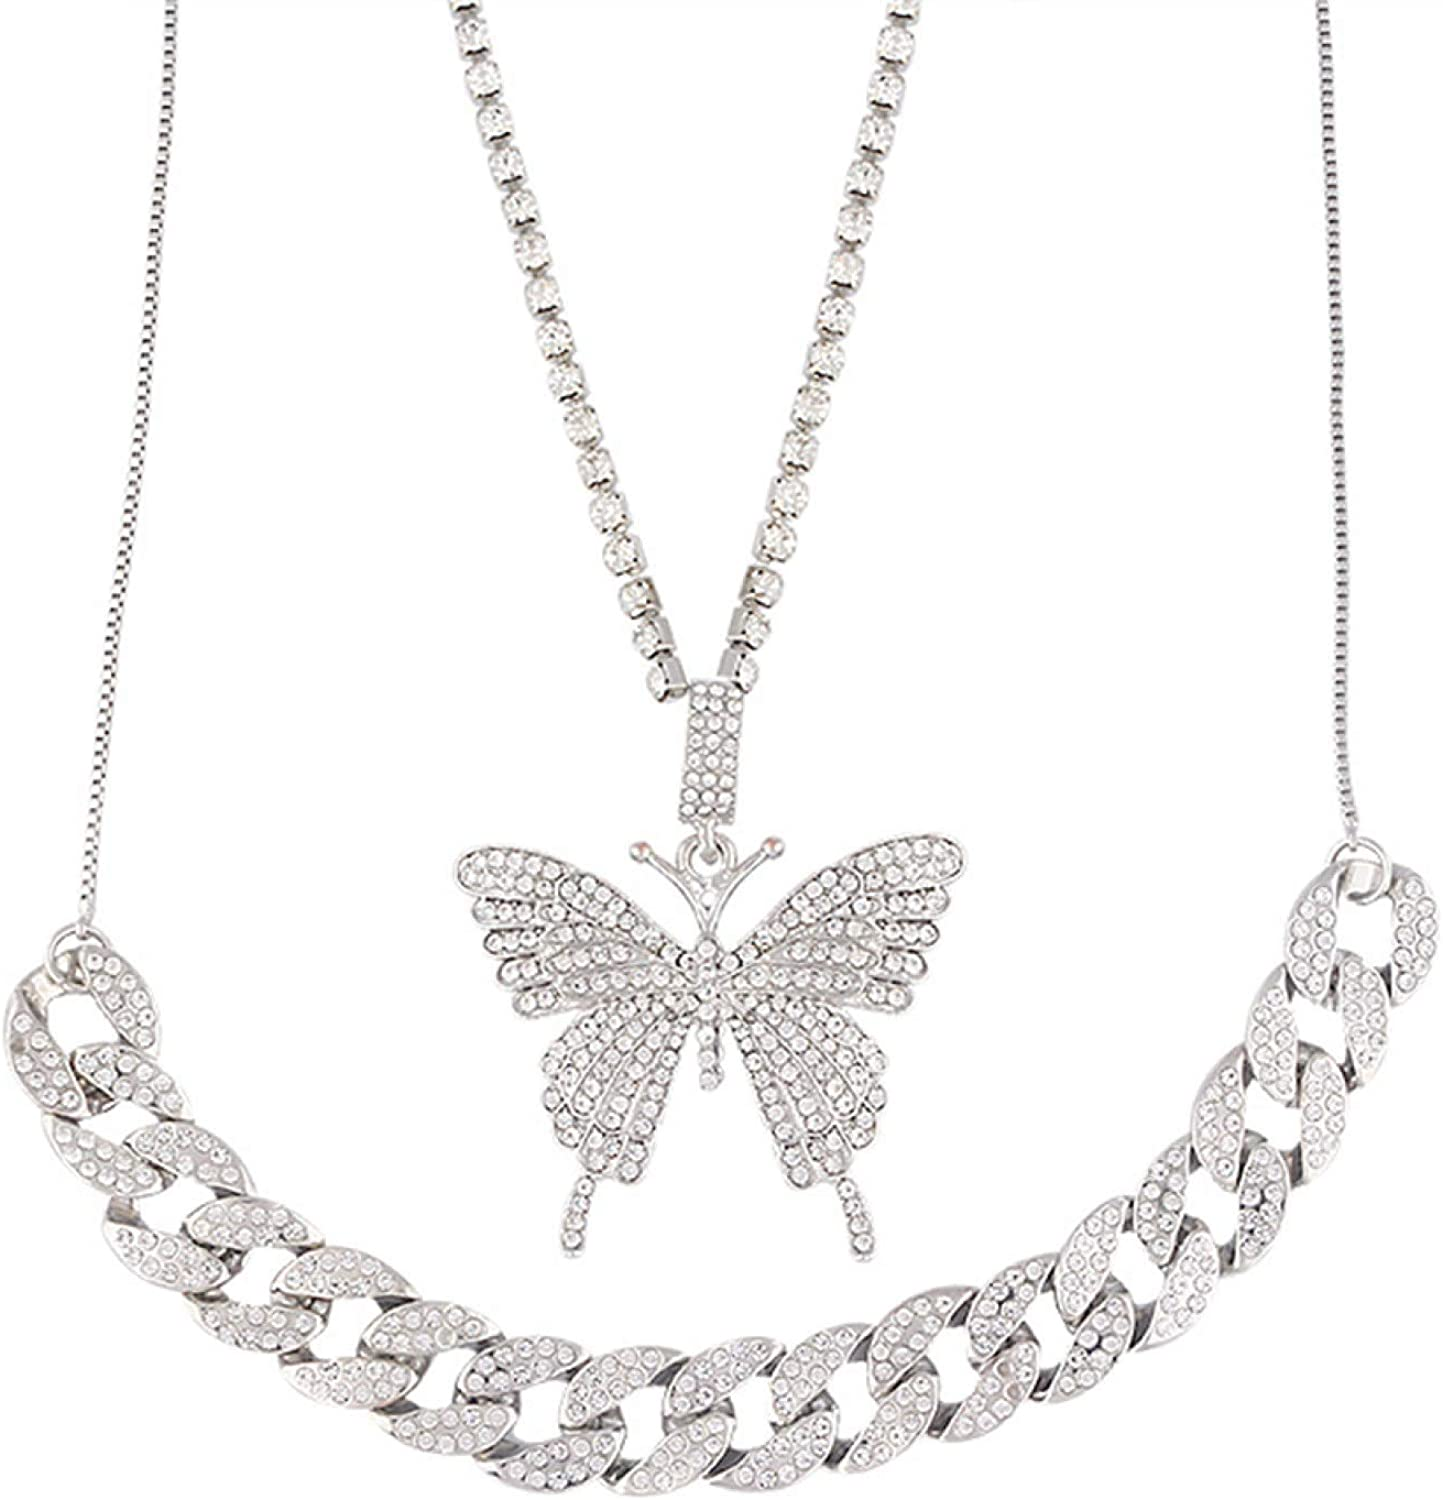 Double Layer Rhinestone Butterfly Pendant Chain Cuba Necklace Jewelry Gift for Women Girls Teens